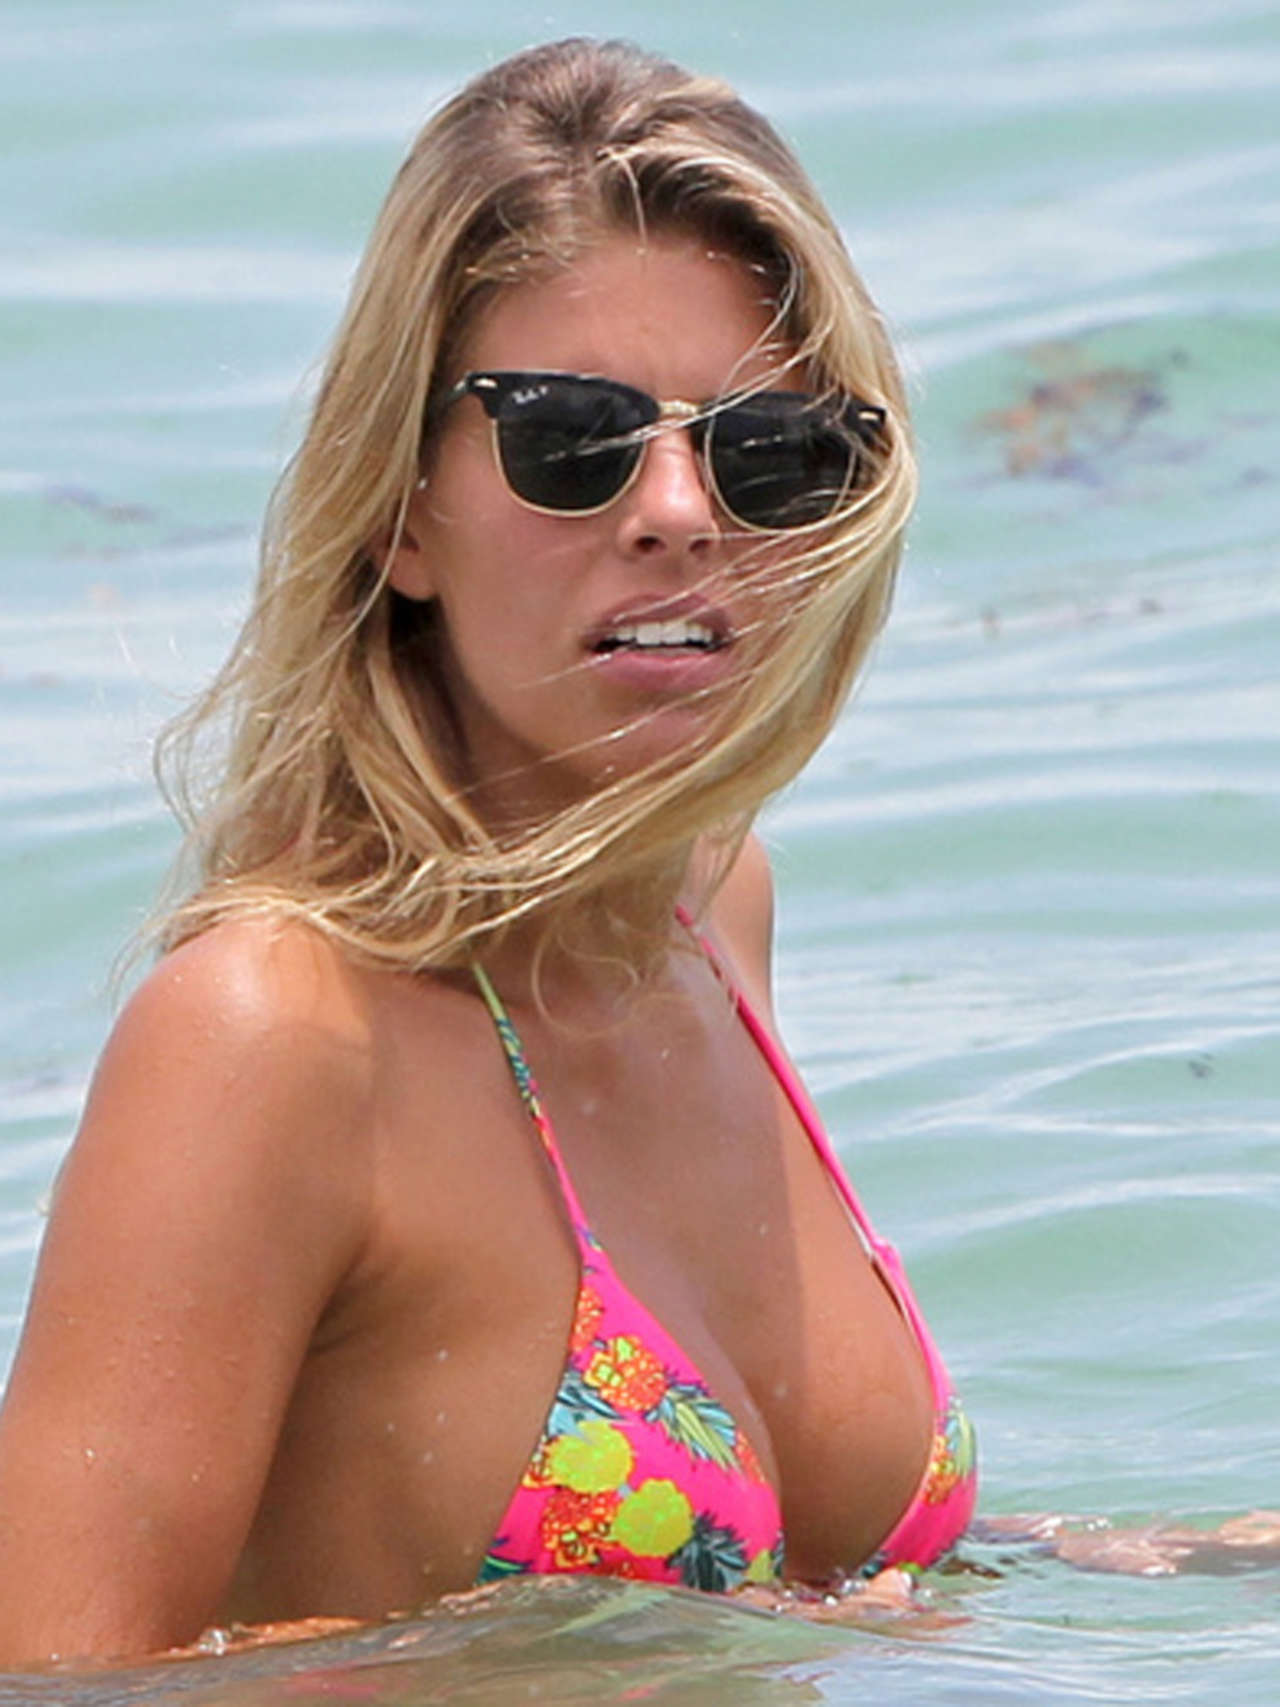 Natasha Oakley Hot in Pink Bikini-03 - Full SizeNatasha Oakley Hot